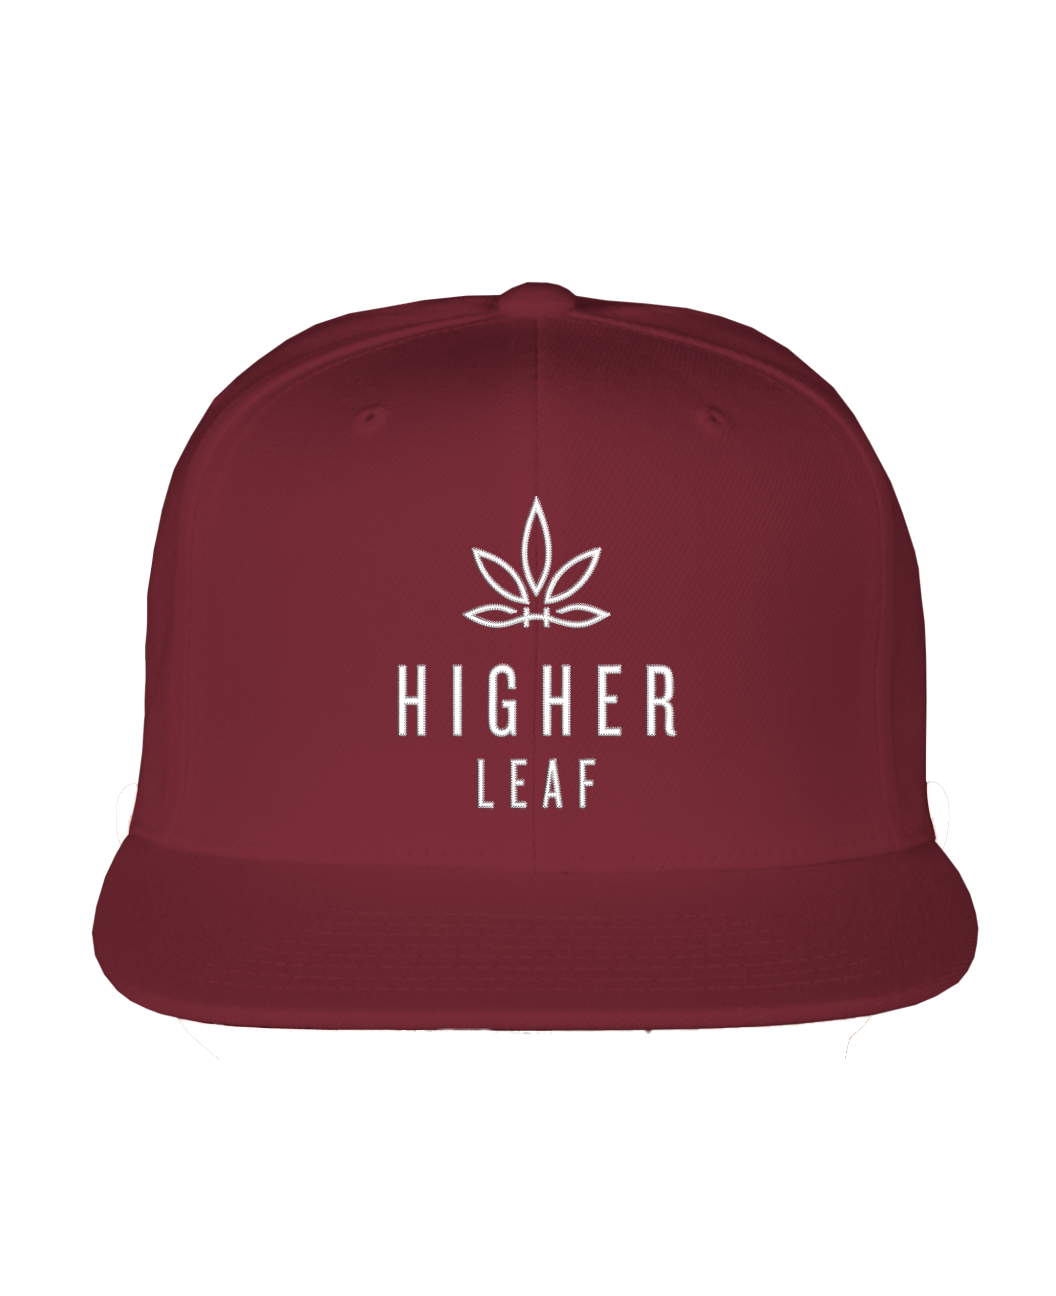 Higher Leaf Stitched Snapback